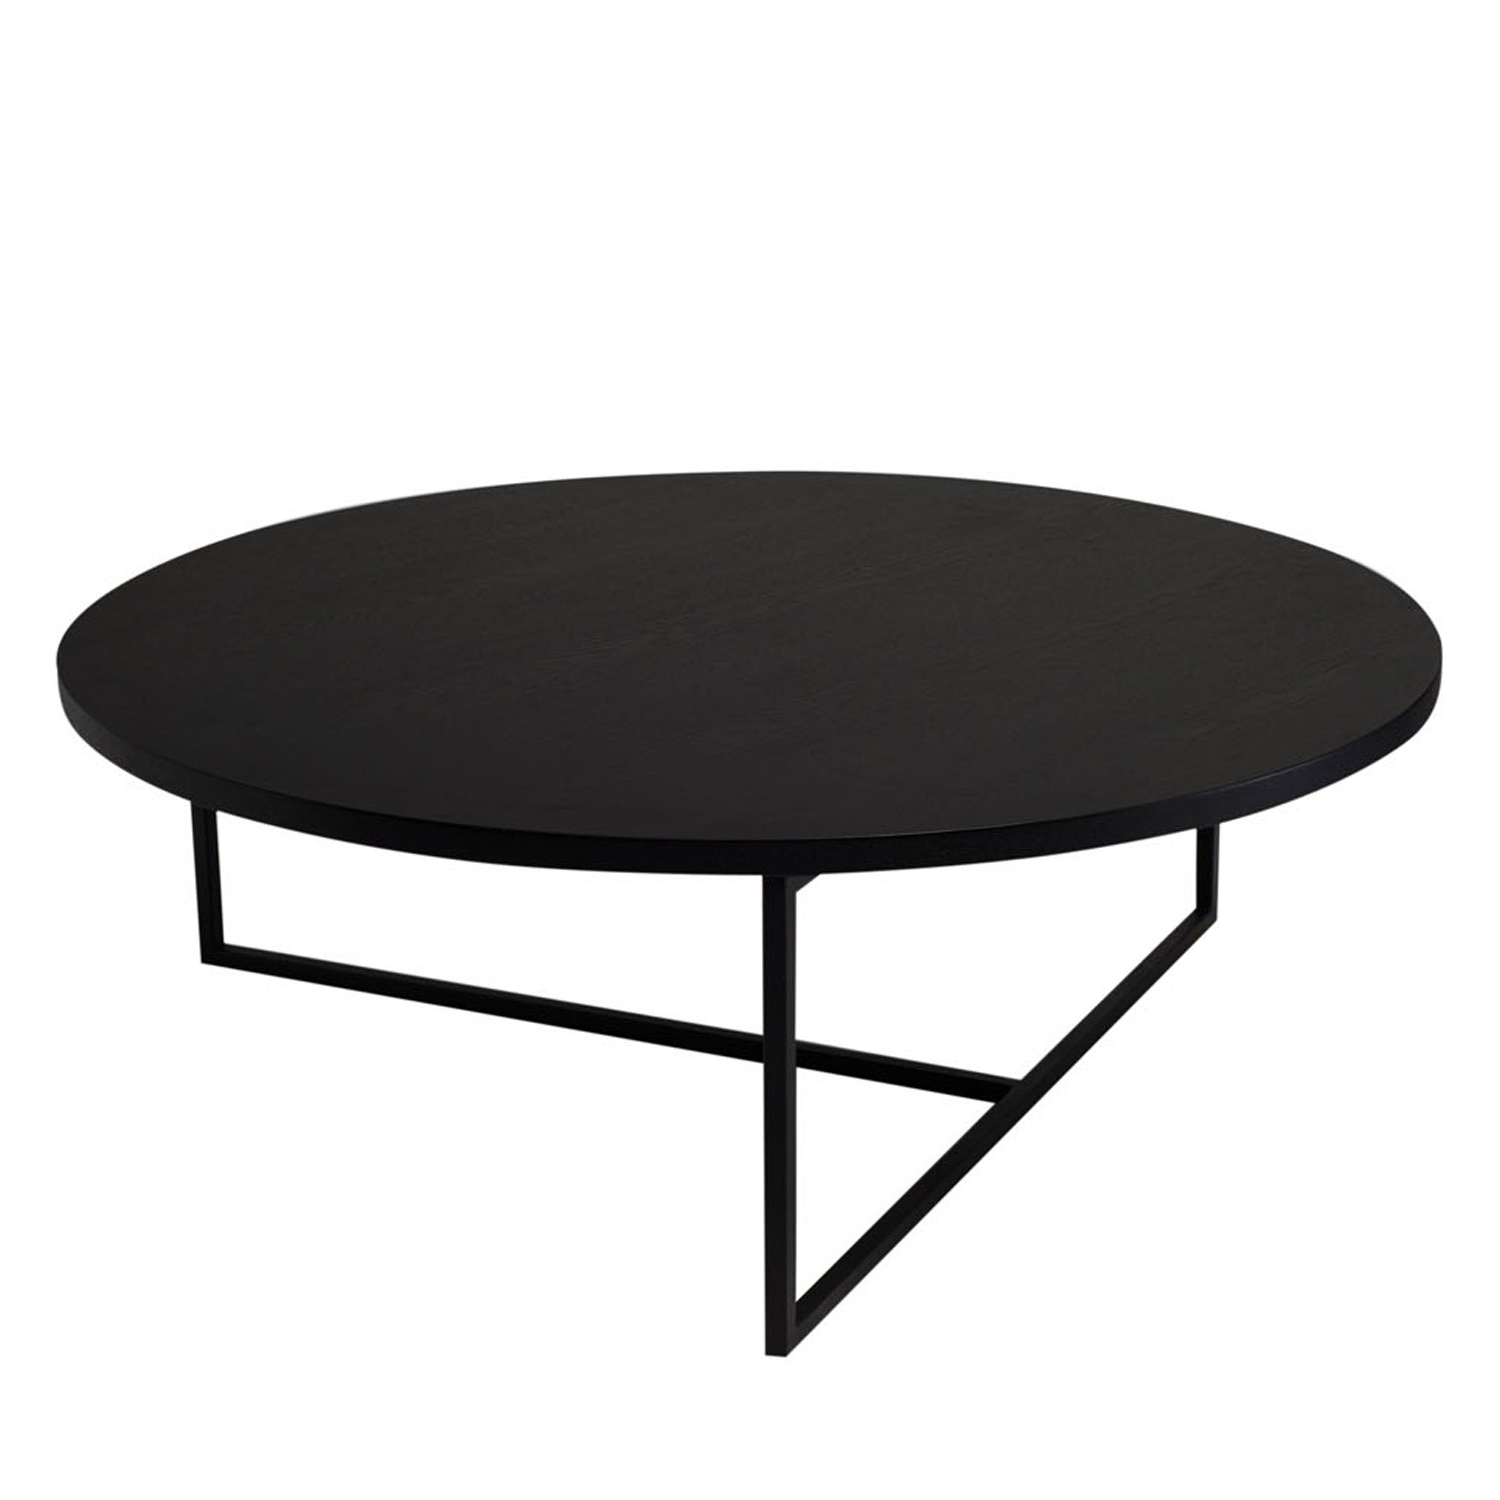 Darbuka Black Coffee Tables Within Widely Used Black Round Coffee Tables – Coffee Drinker (View 8 of 20)